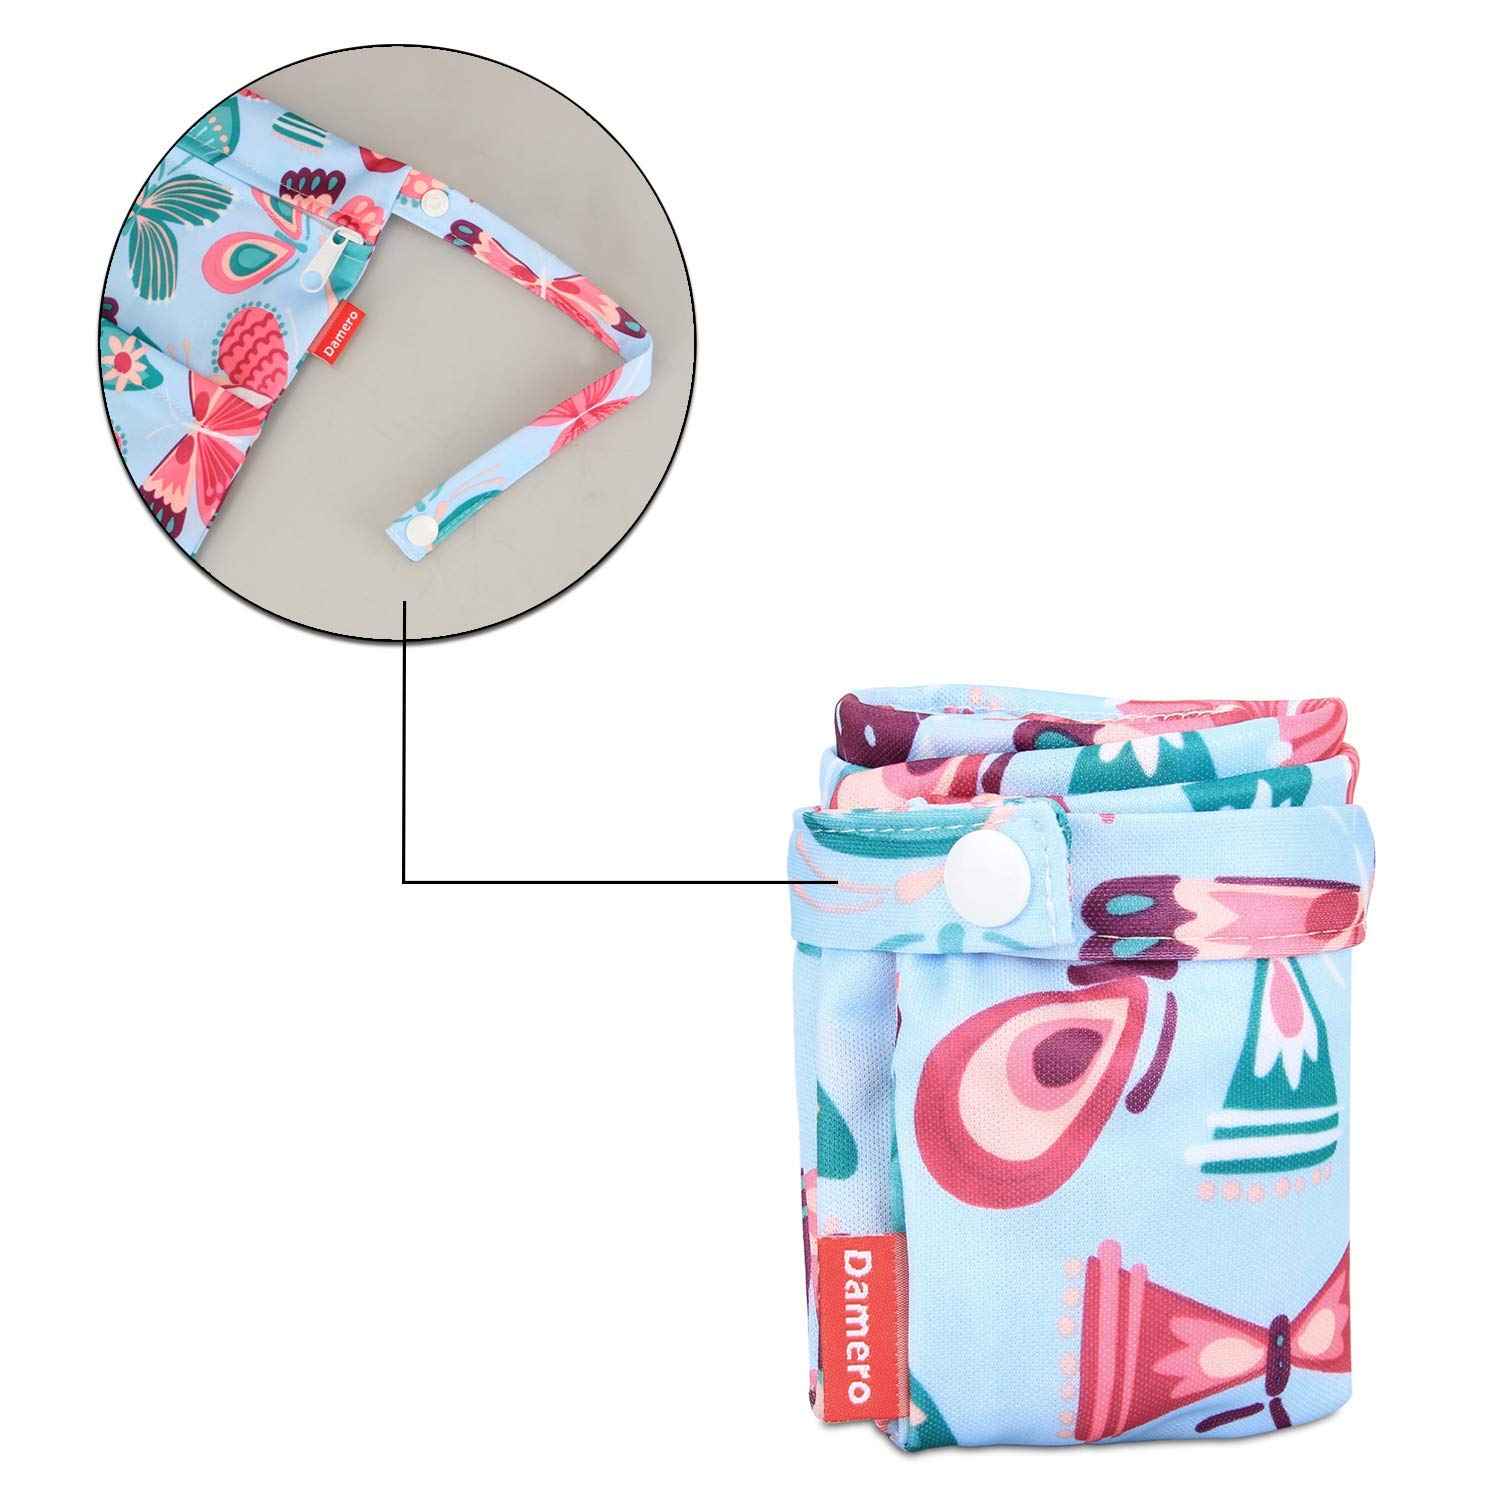 Small+Large,Unicorn Damero 2Pcs Cute Travel Baby Wet and Dry Cloth Diaper Organizer Bag